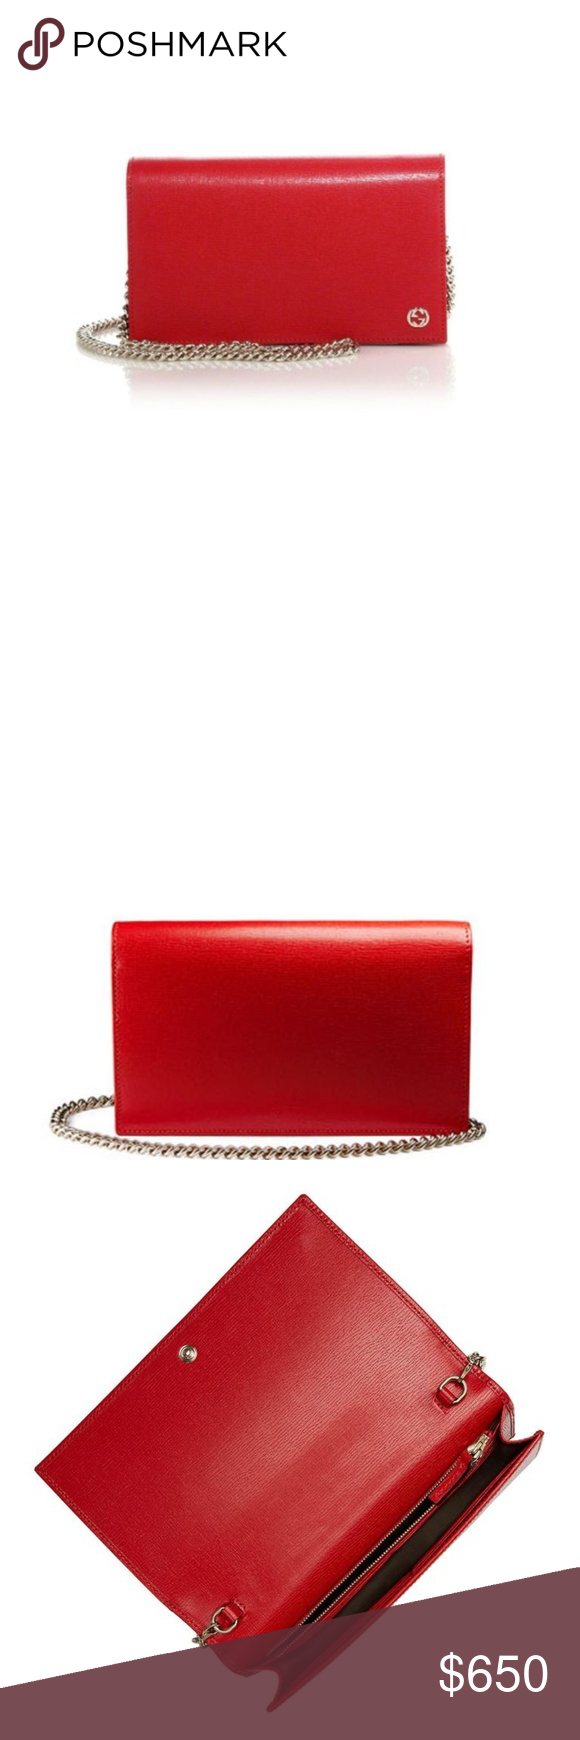 32a93887747 NWT GUCCI WOC Gucci Red New Betty Leather Chain Woc Black Cross Body Bag In  Wallet Gucci